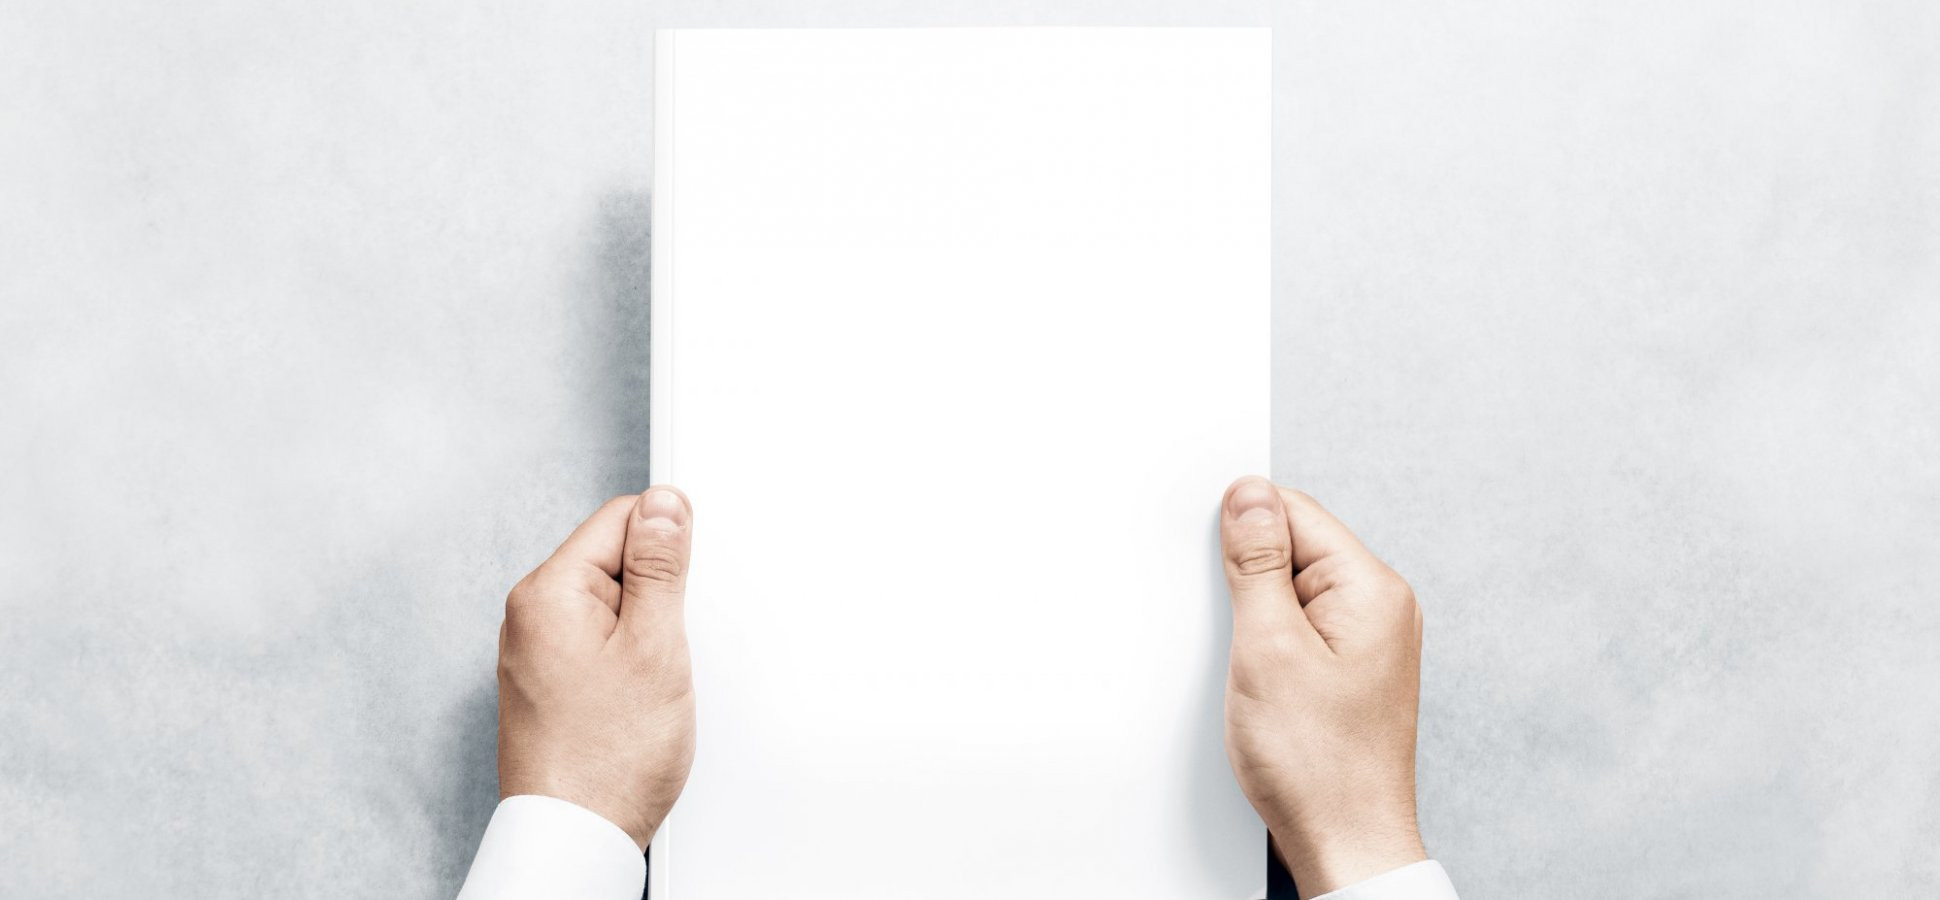 In 2019, Your Cover Letter Only Needs 1 Thing (Unfortunately, Most Will Fail to Include It)